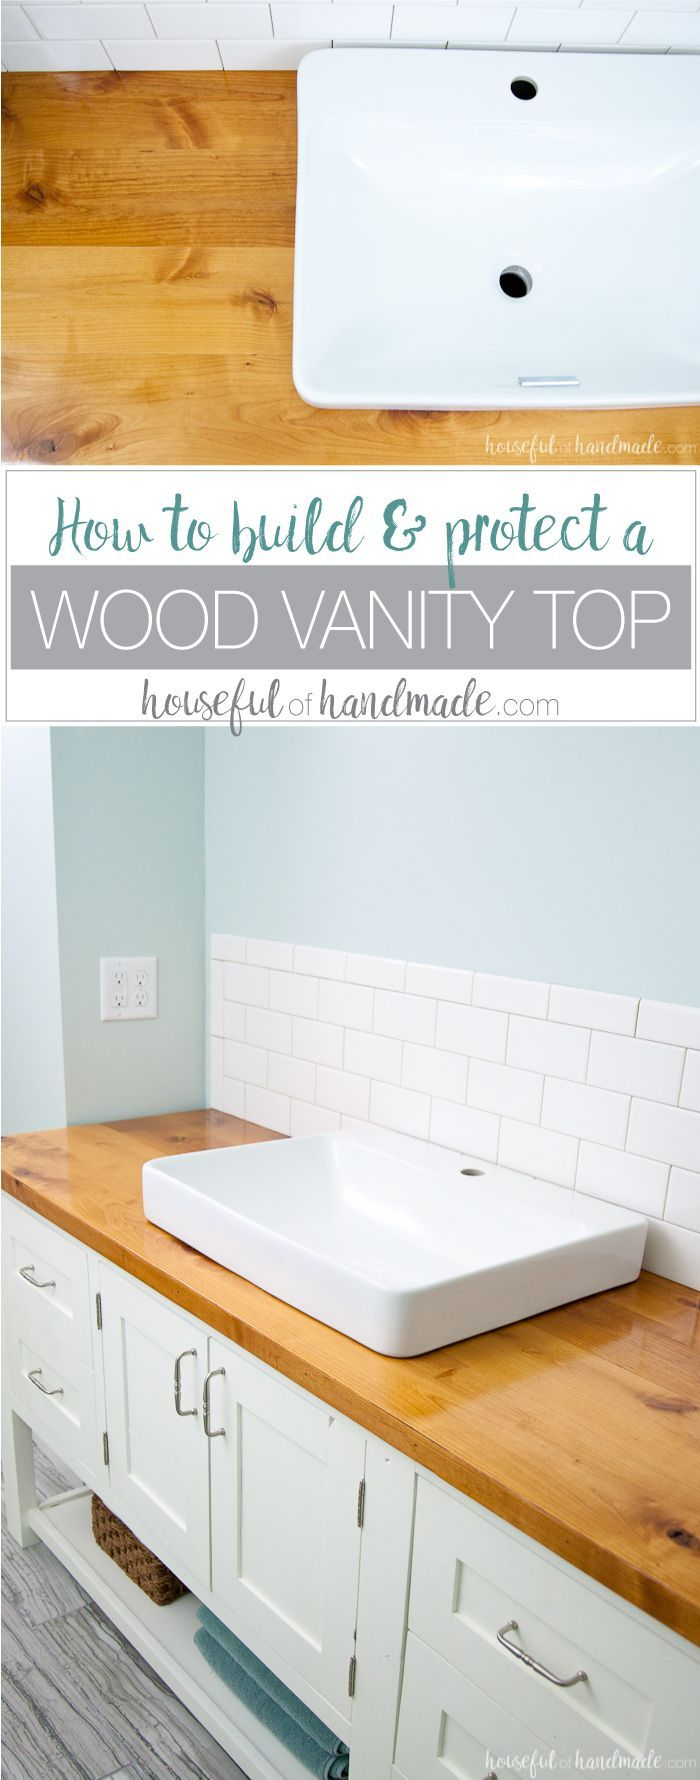 I absolutely love the look of this bathroom vanity! Add some rustic warmth to your farmhouse bathroom by adding a waterproof wood vanity top. Learn how to build & protect a wood vanity top for your next DIY renovation.   Housefulofhandmade.com